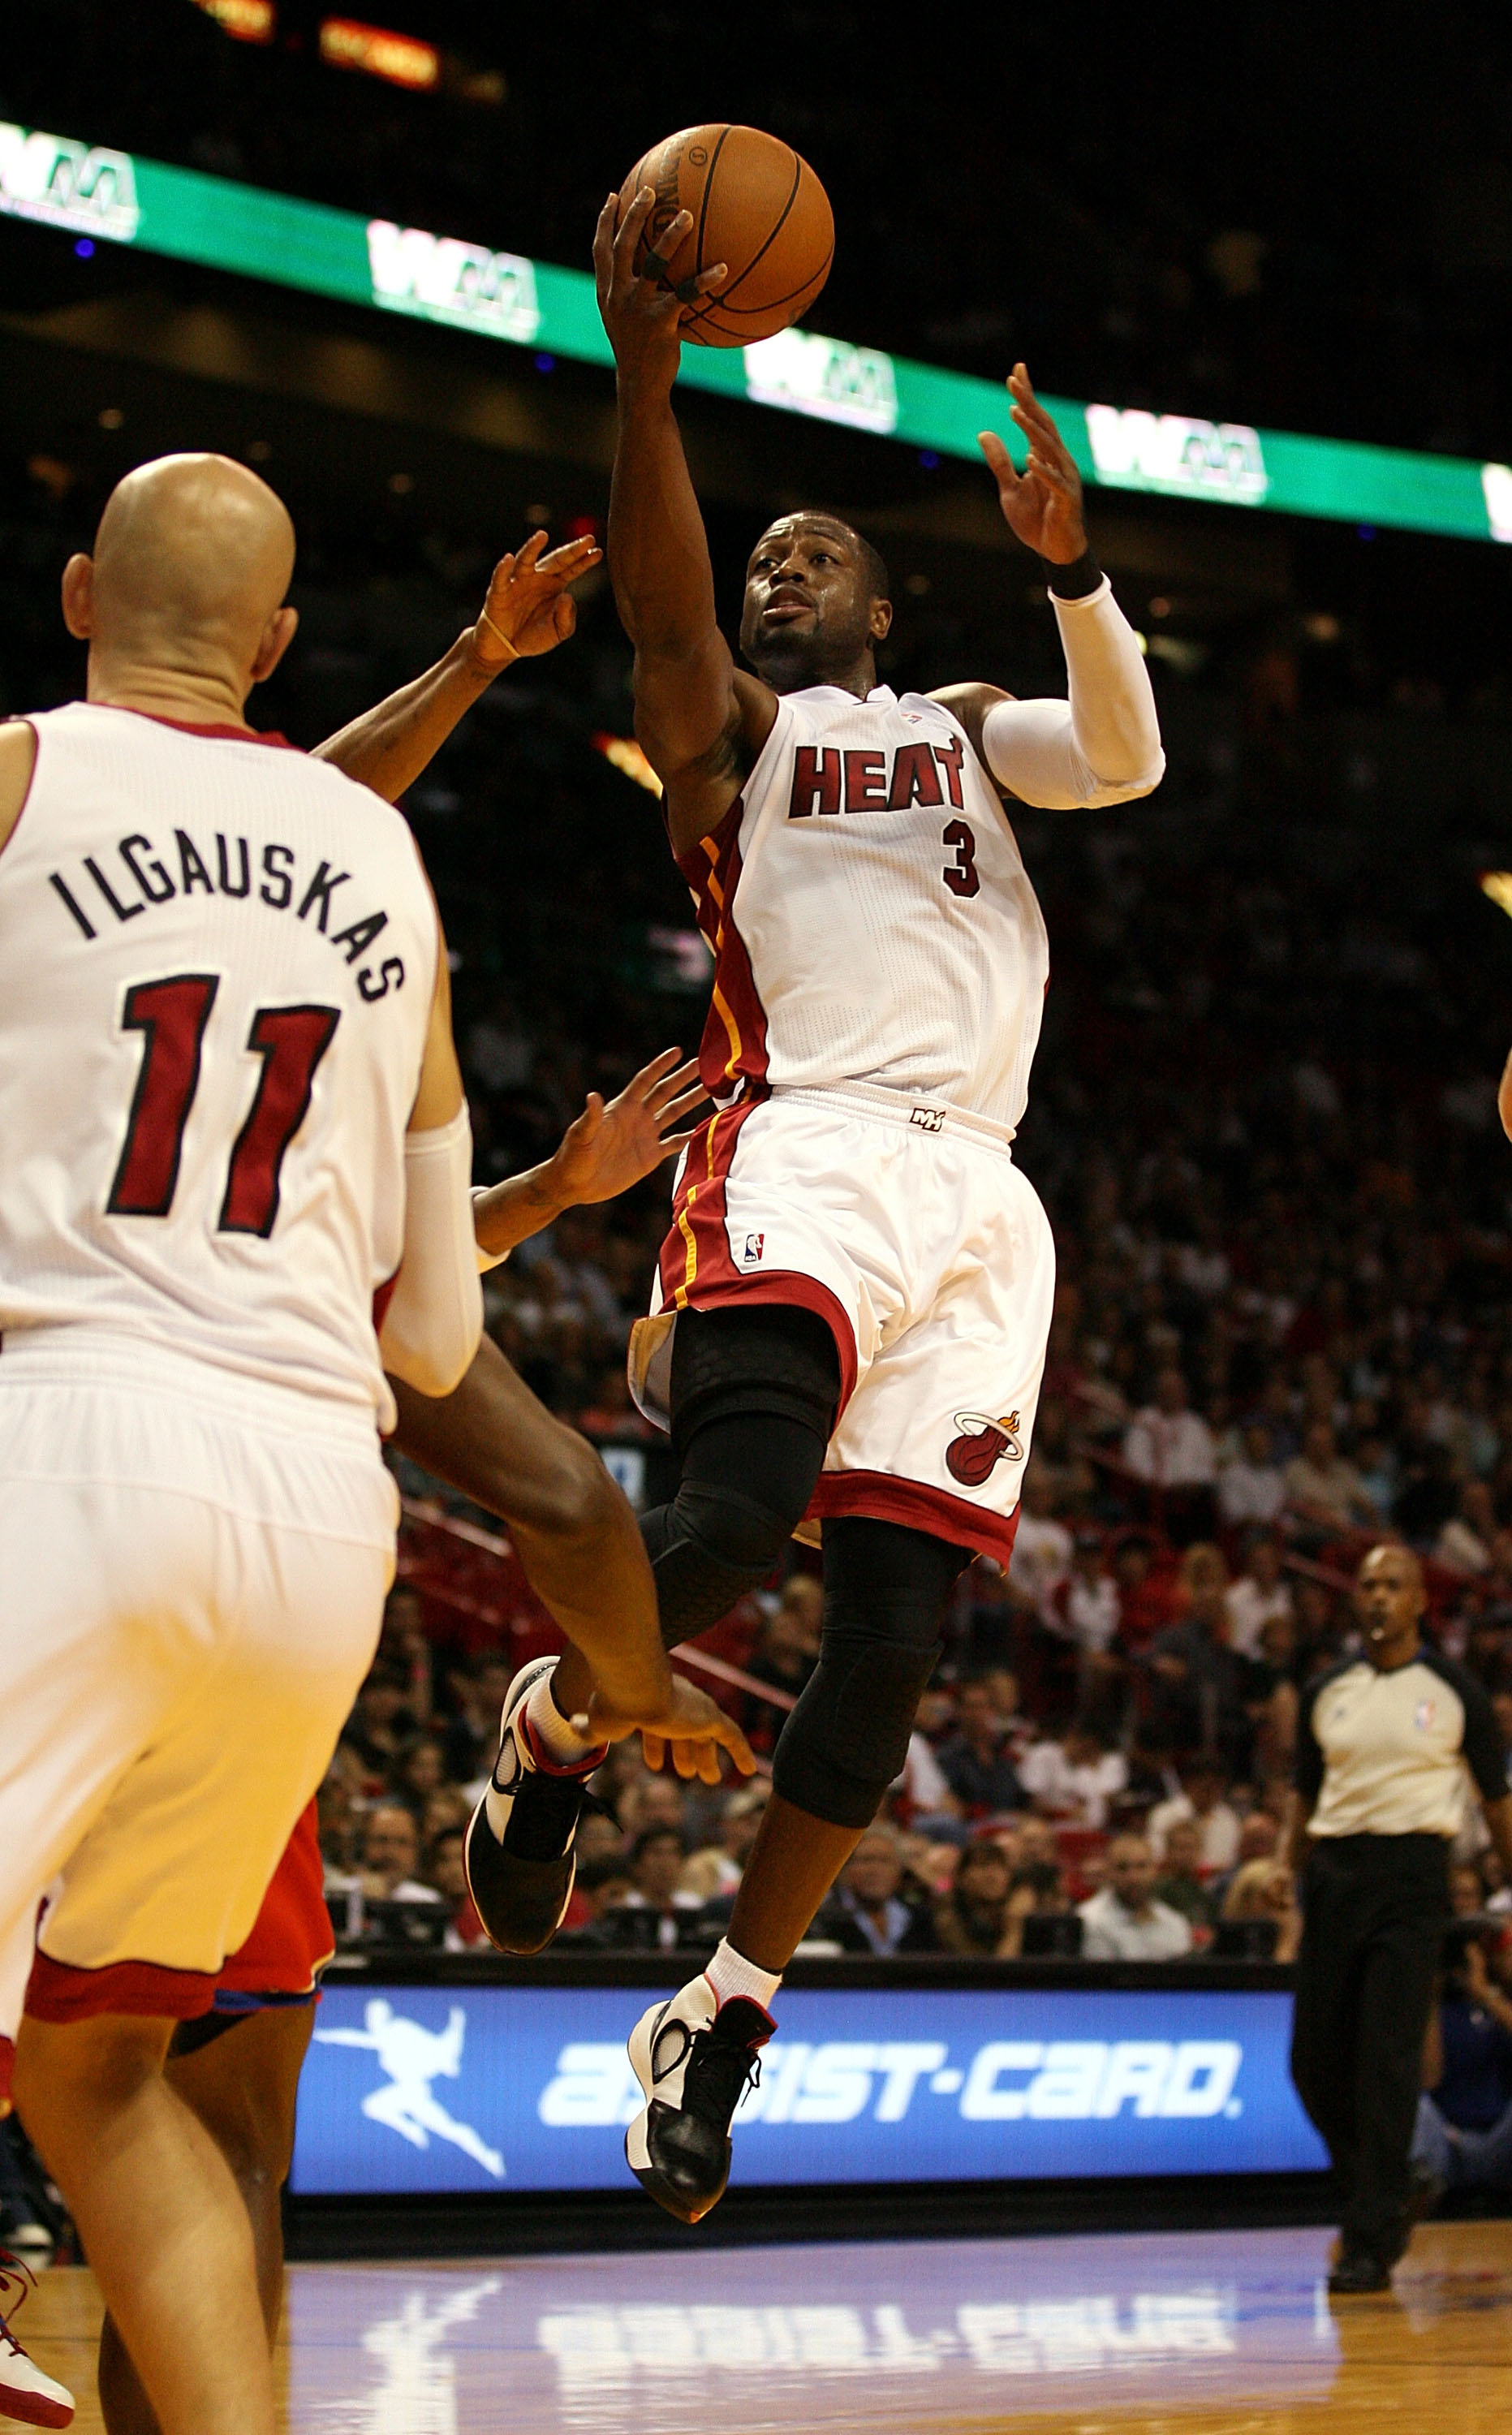 MIAMI - NOVEMBER 26:  Guard Dwyane Wade #3 of the Miami Heat shoots against the Philadelphia 76ers at American Airlines Arena on November 26, 2010 in Miami, Florida.  (Photo by Marc Serota/Getty Images)